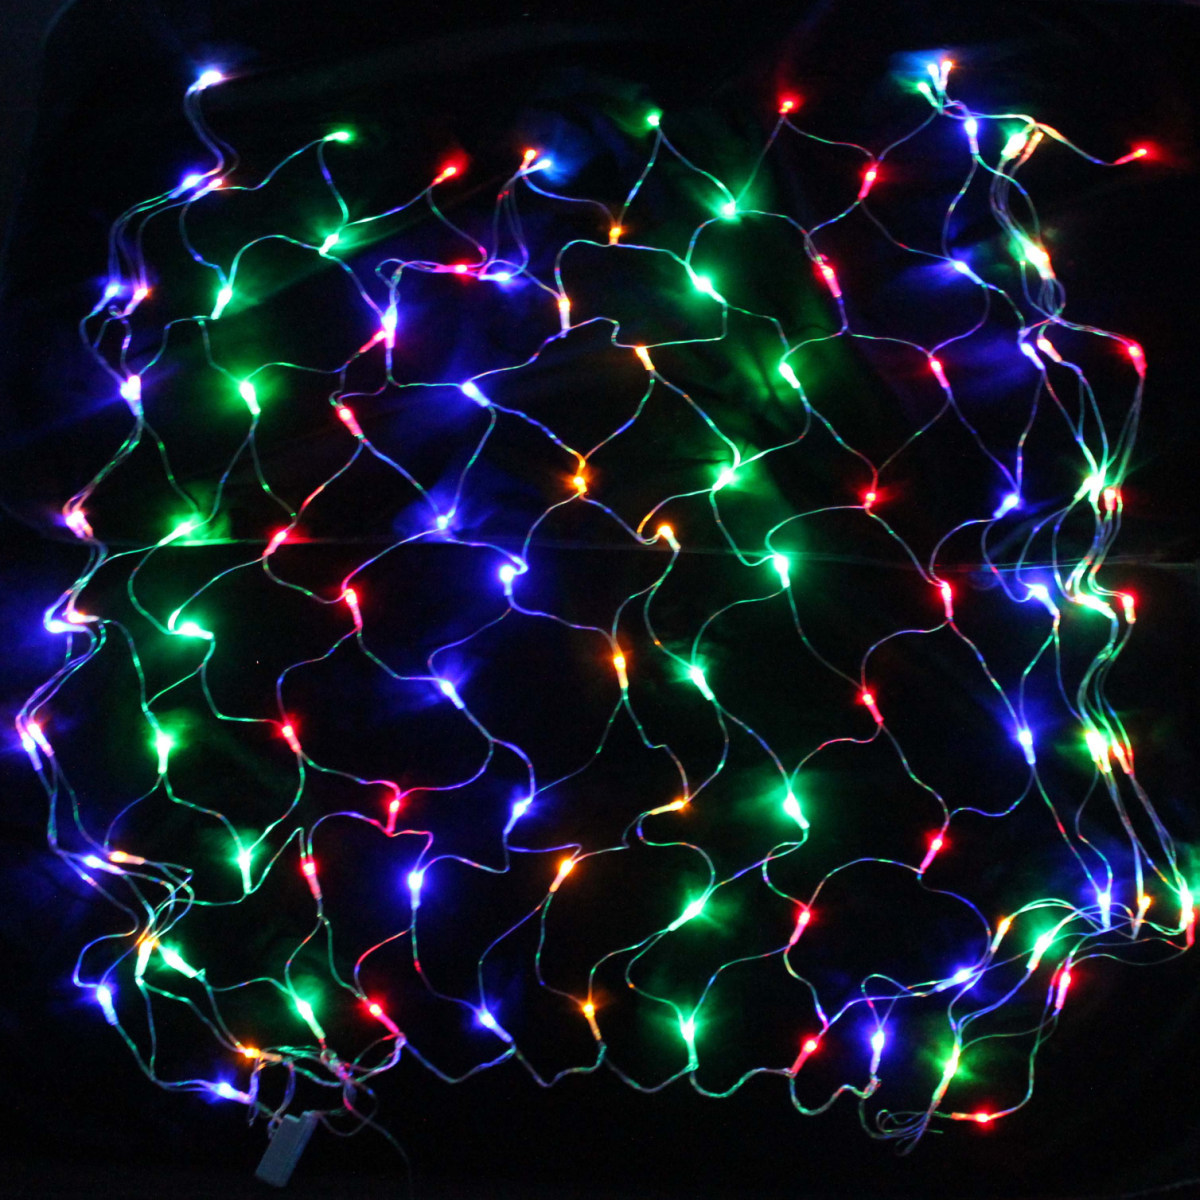 3h1-Christmas-decoration-120-led-net-lights-decoration-lamp-curtain-lights-lantern-string-light ...